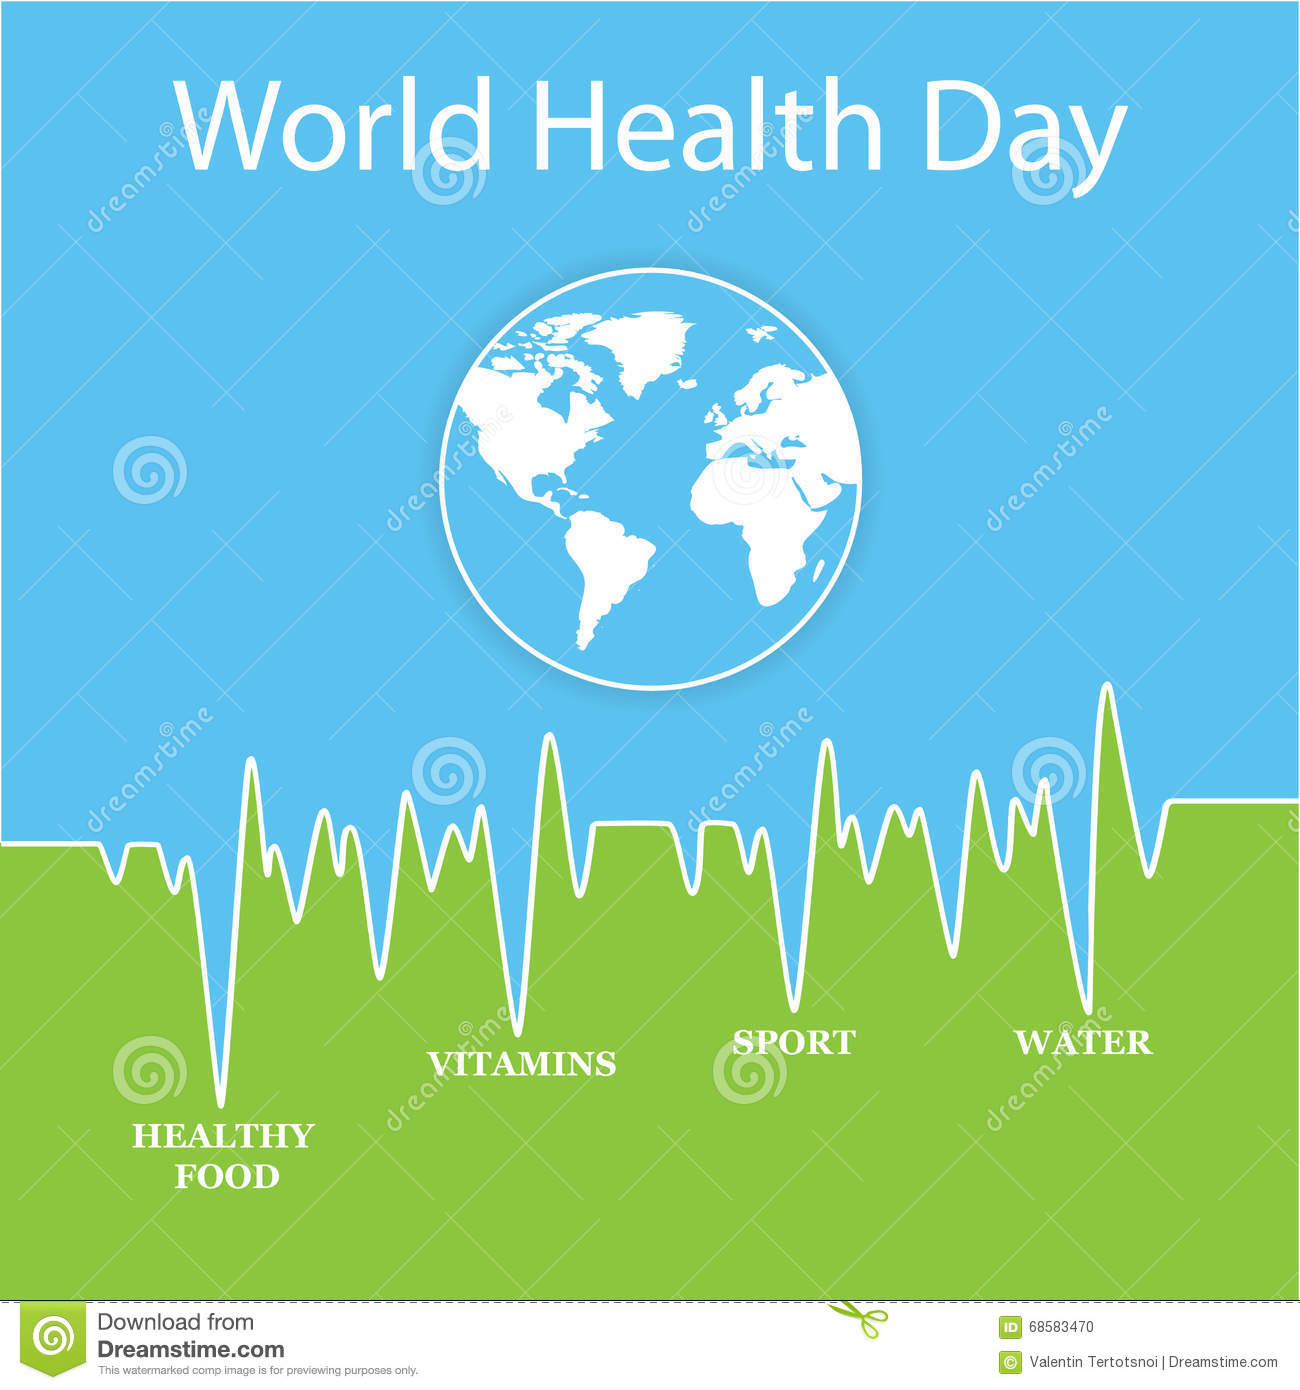 Vector Illustration For World Health Day Stock Vector ...